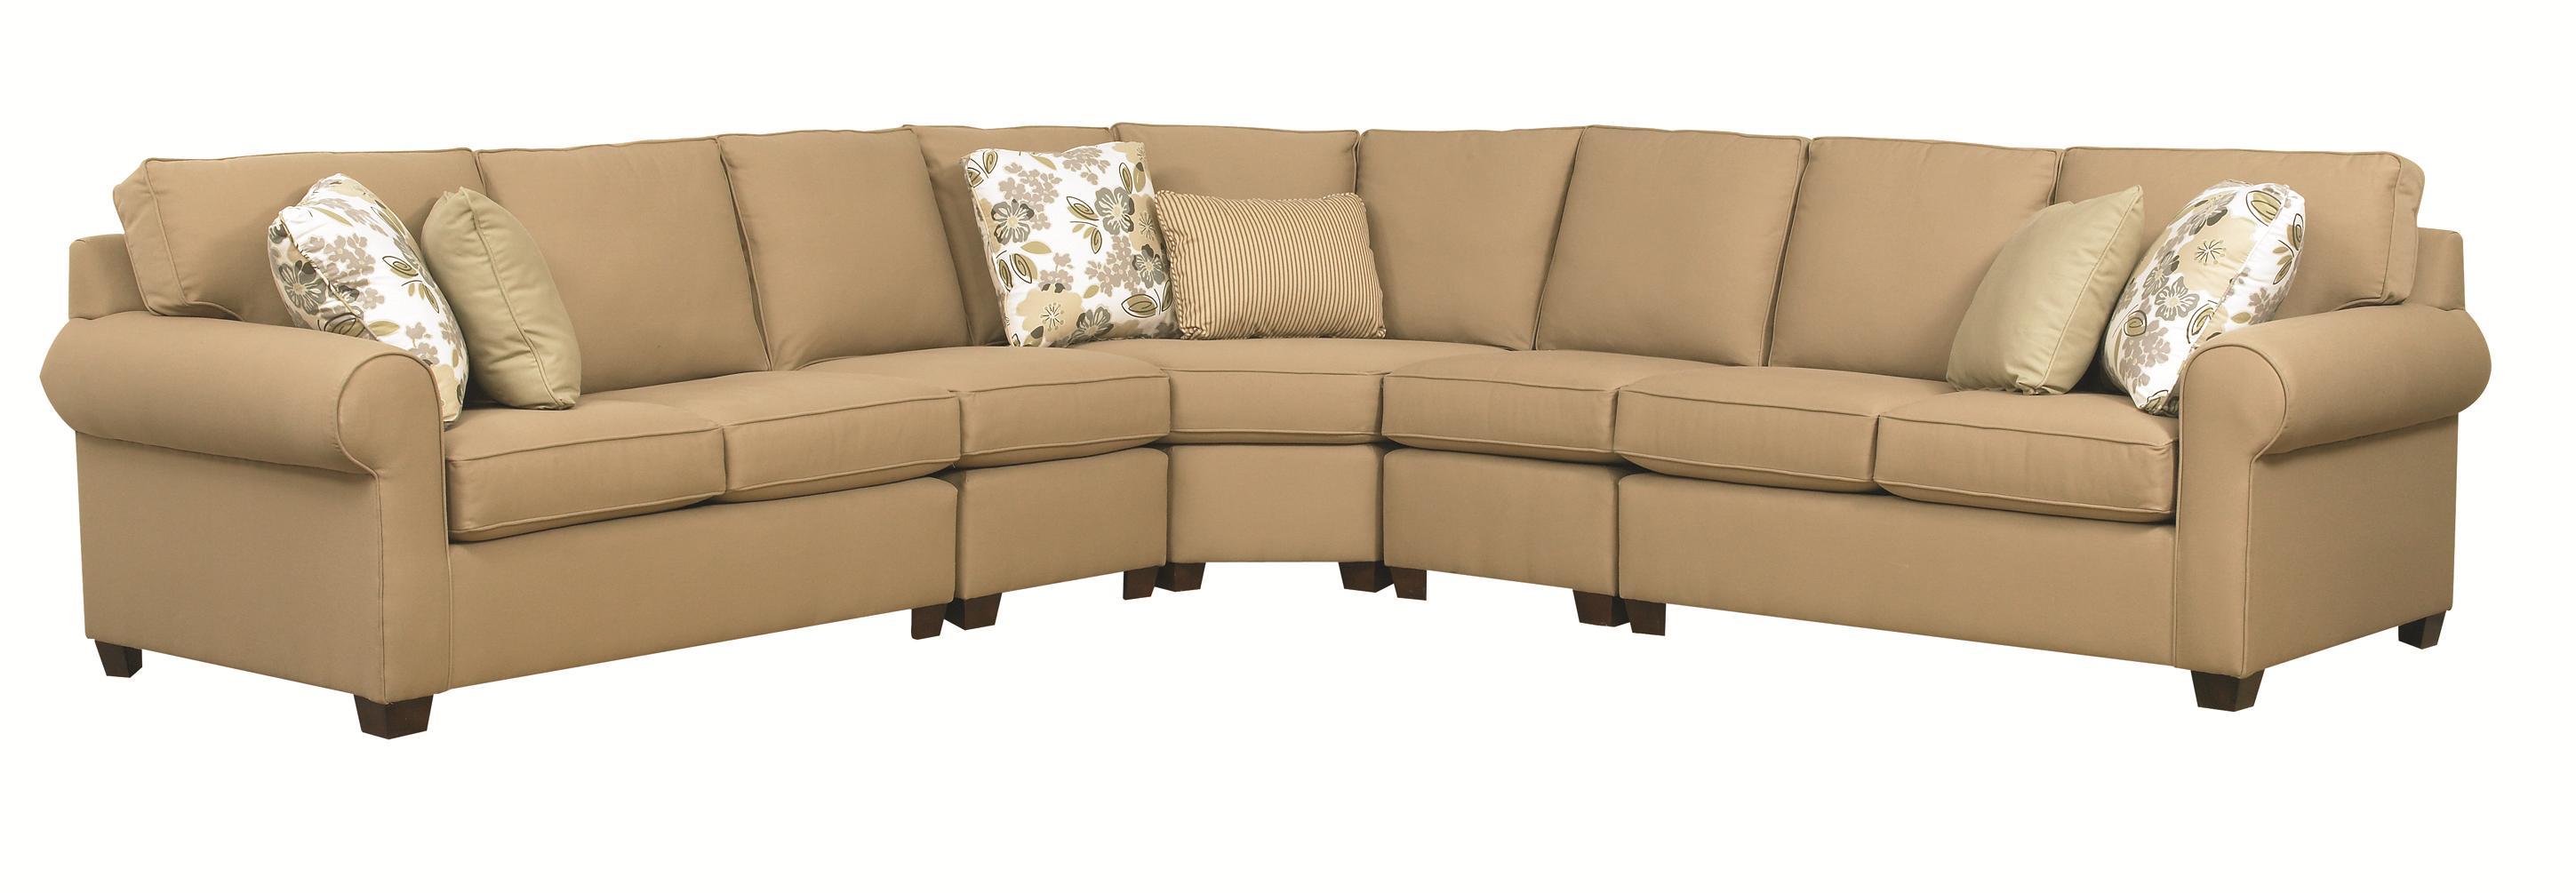 Five Piece Sectional Sofa With Rolled Arms